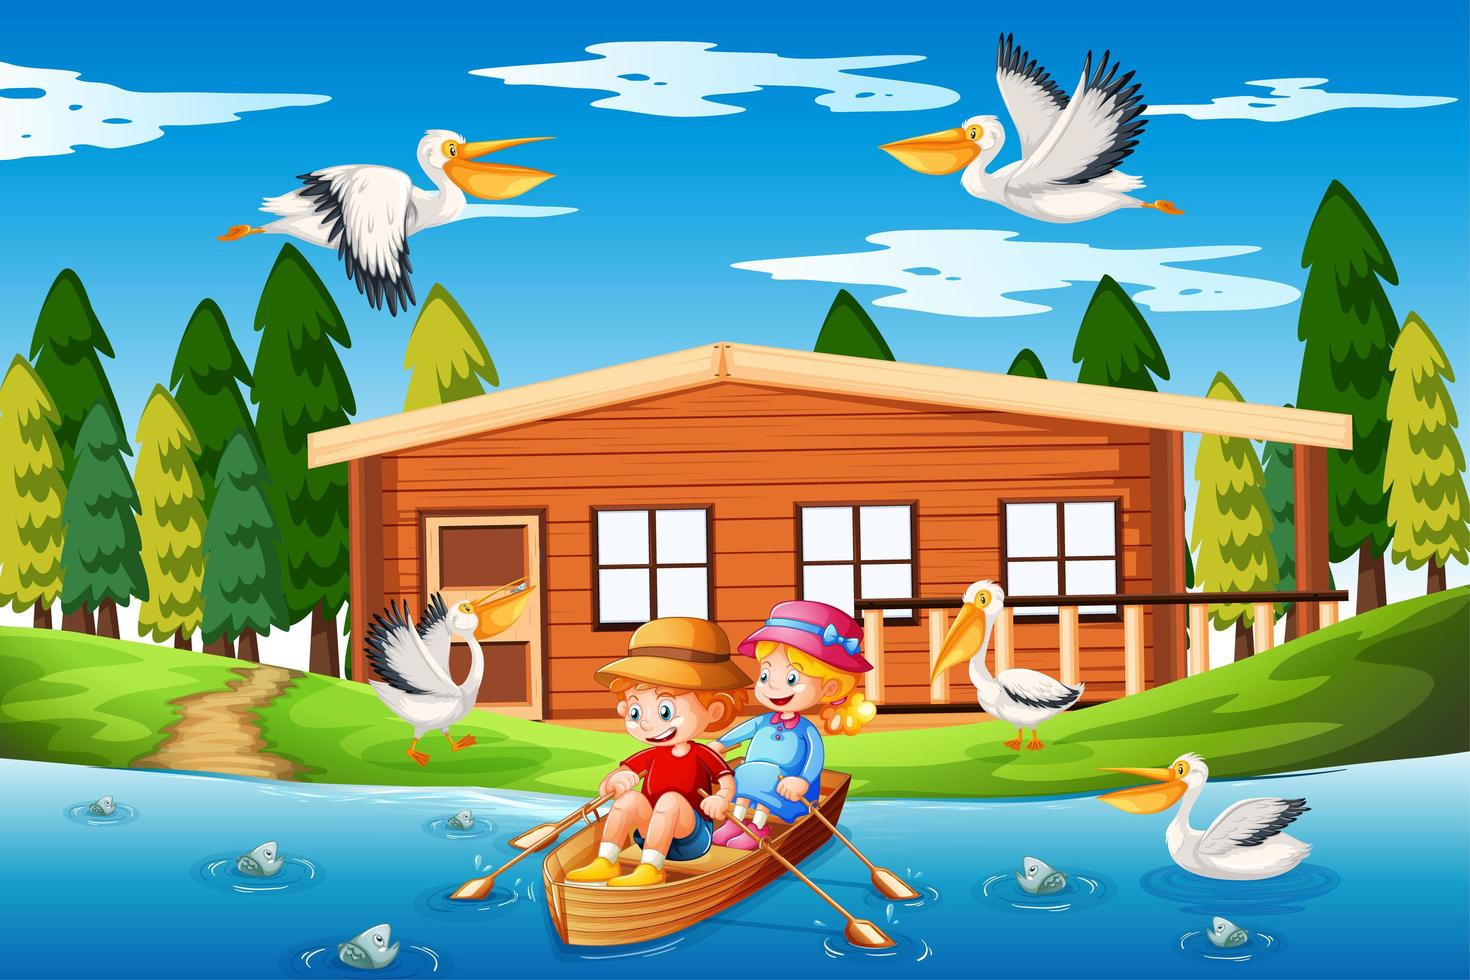 Children row the boat in the stream forest scene vector